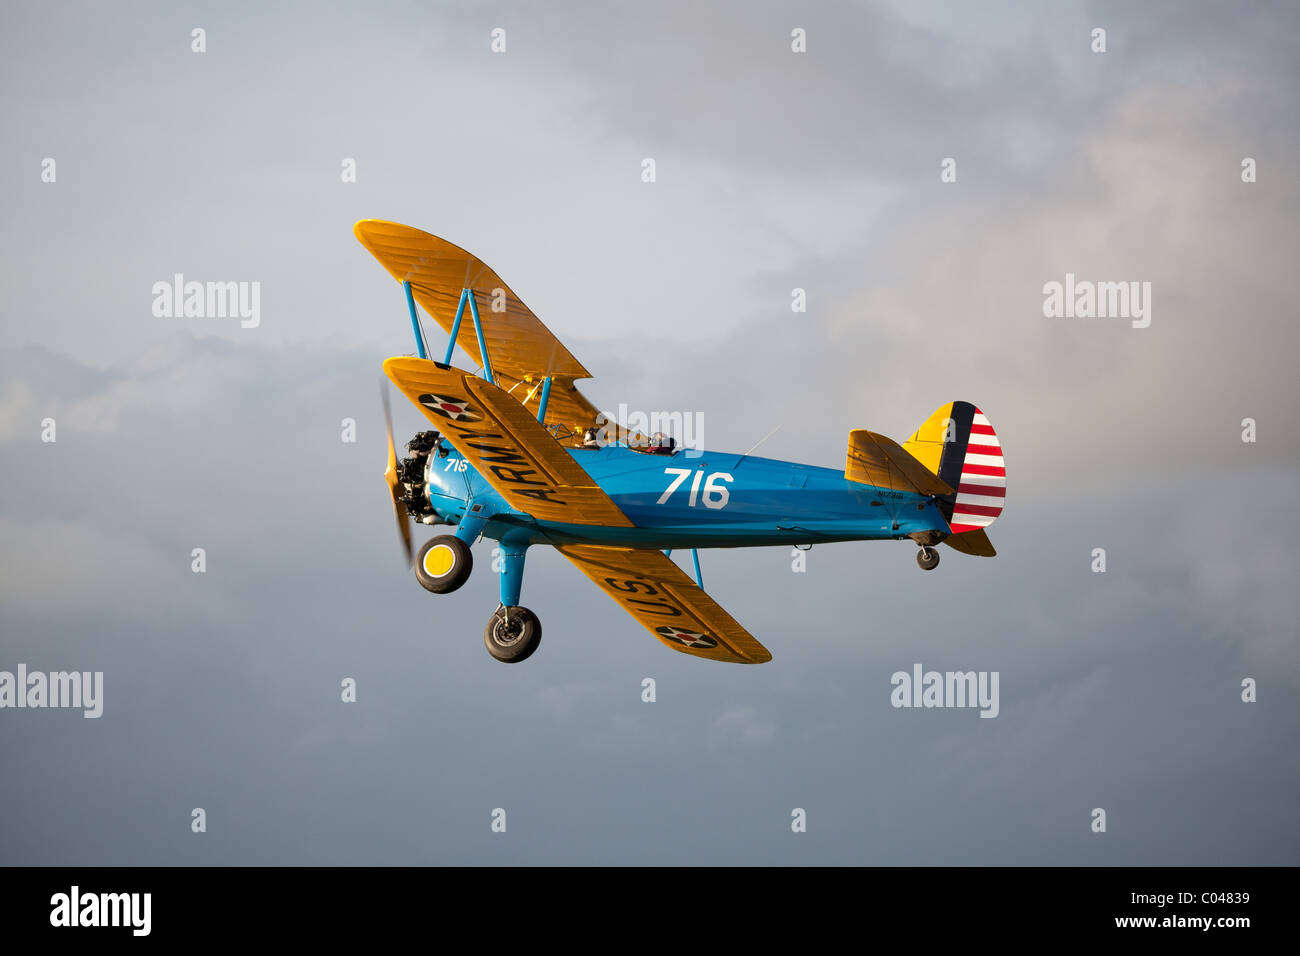 A vintage PT13-D Stearman biplane flying at Compton Abbas airfield in England - Stock Image